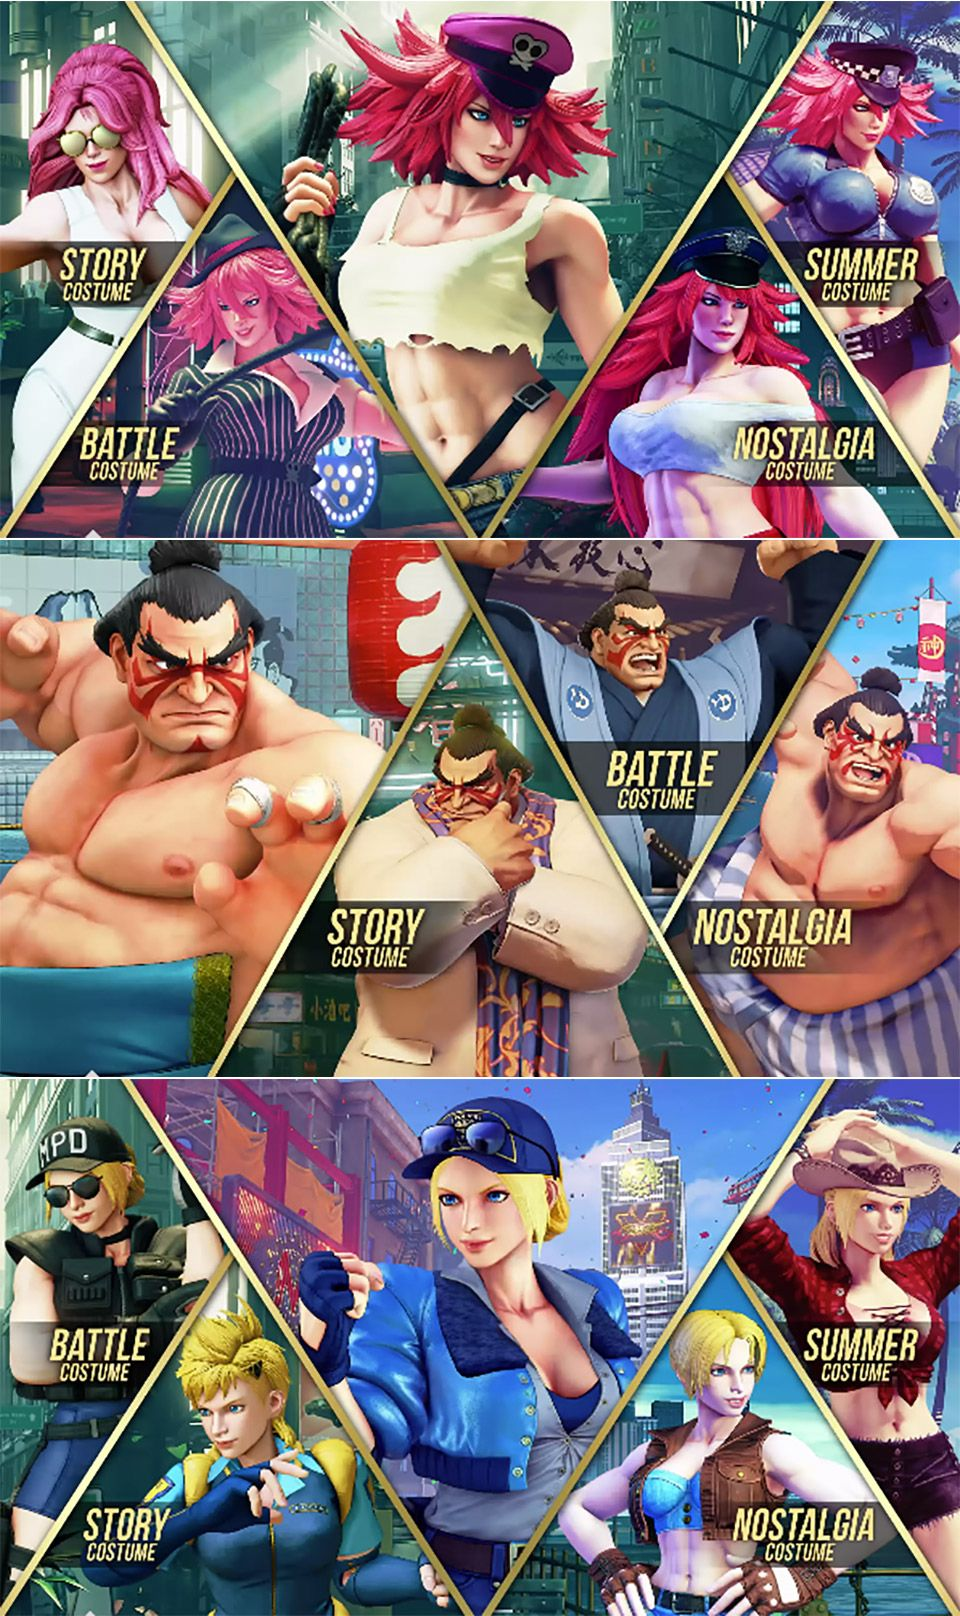 New Street Fighter V Trailers Preview E Honda Poison And Lucia